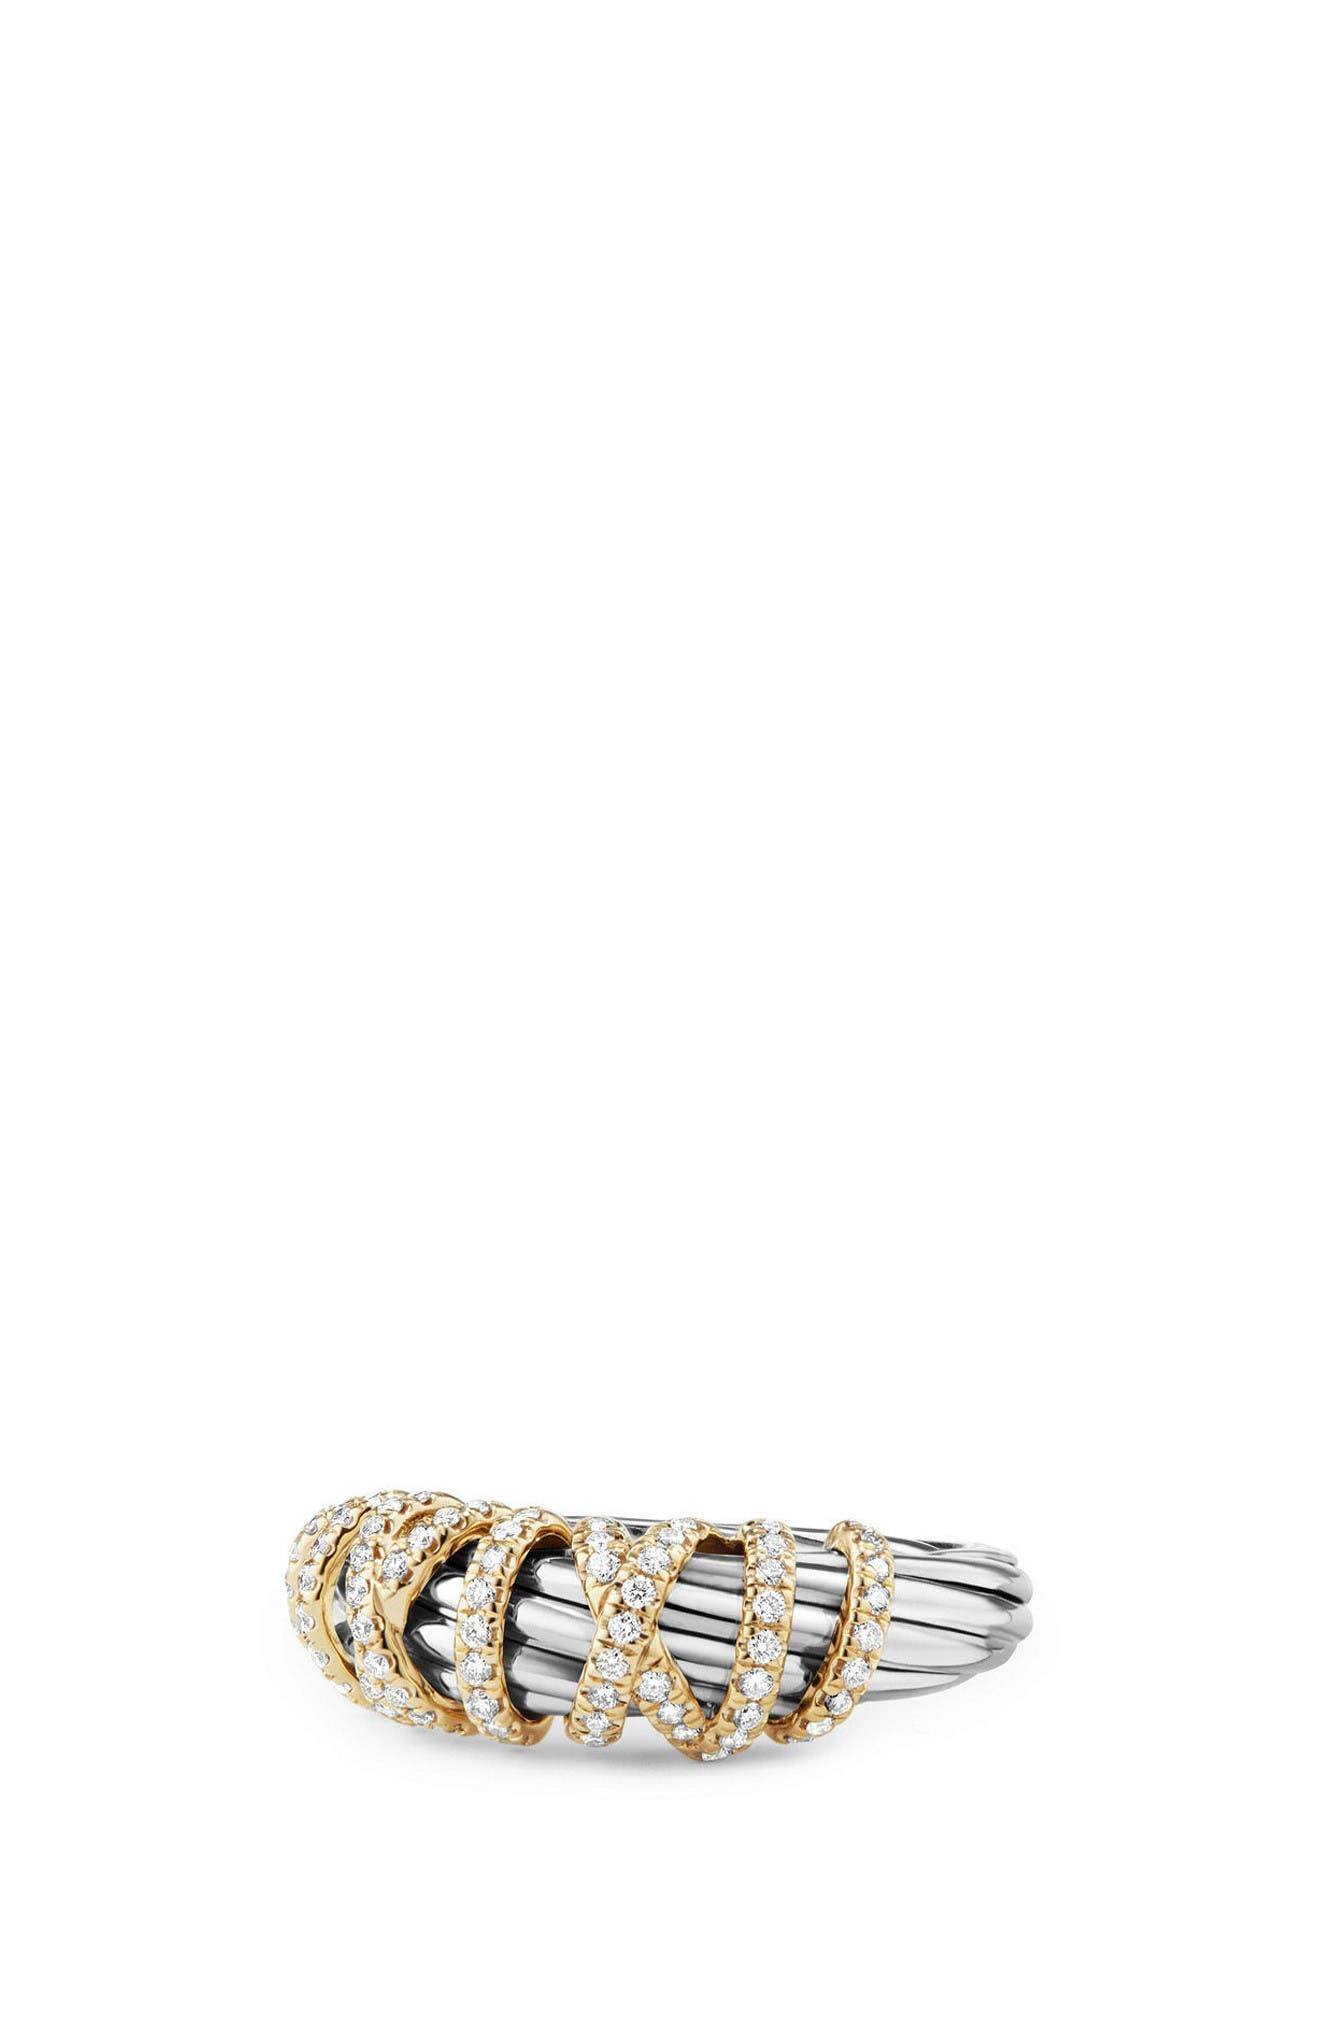 Ring with Diamond and 18K Gold, 8mm,                         Main,                         color, Silver/ Gold